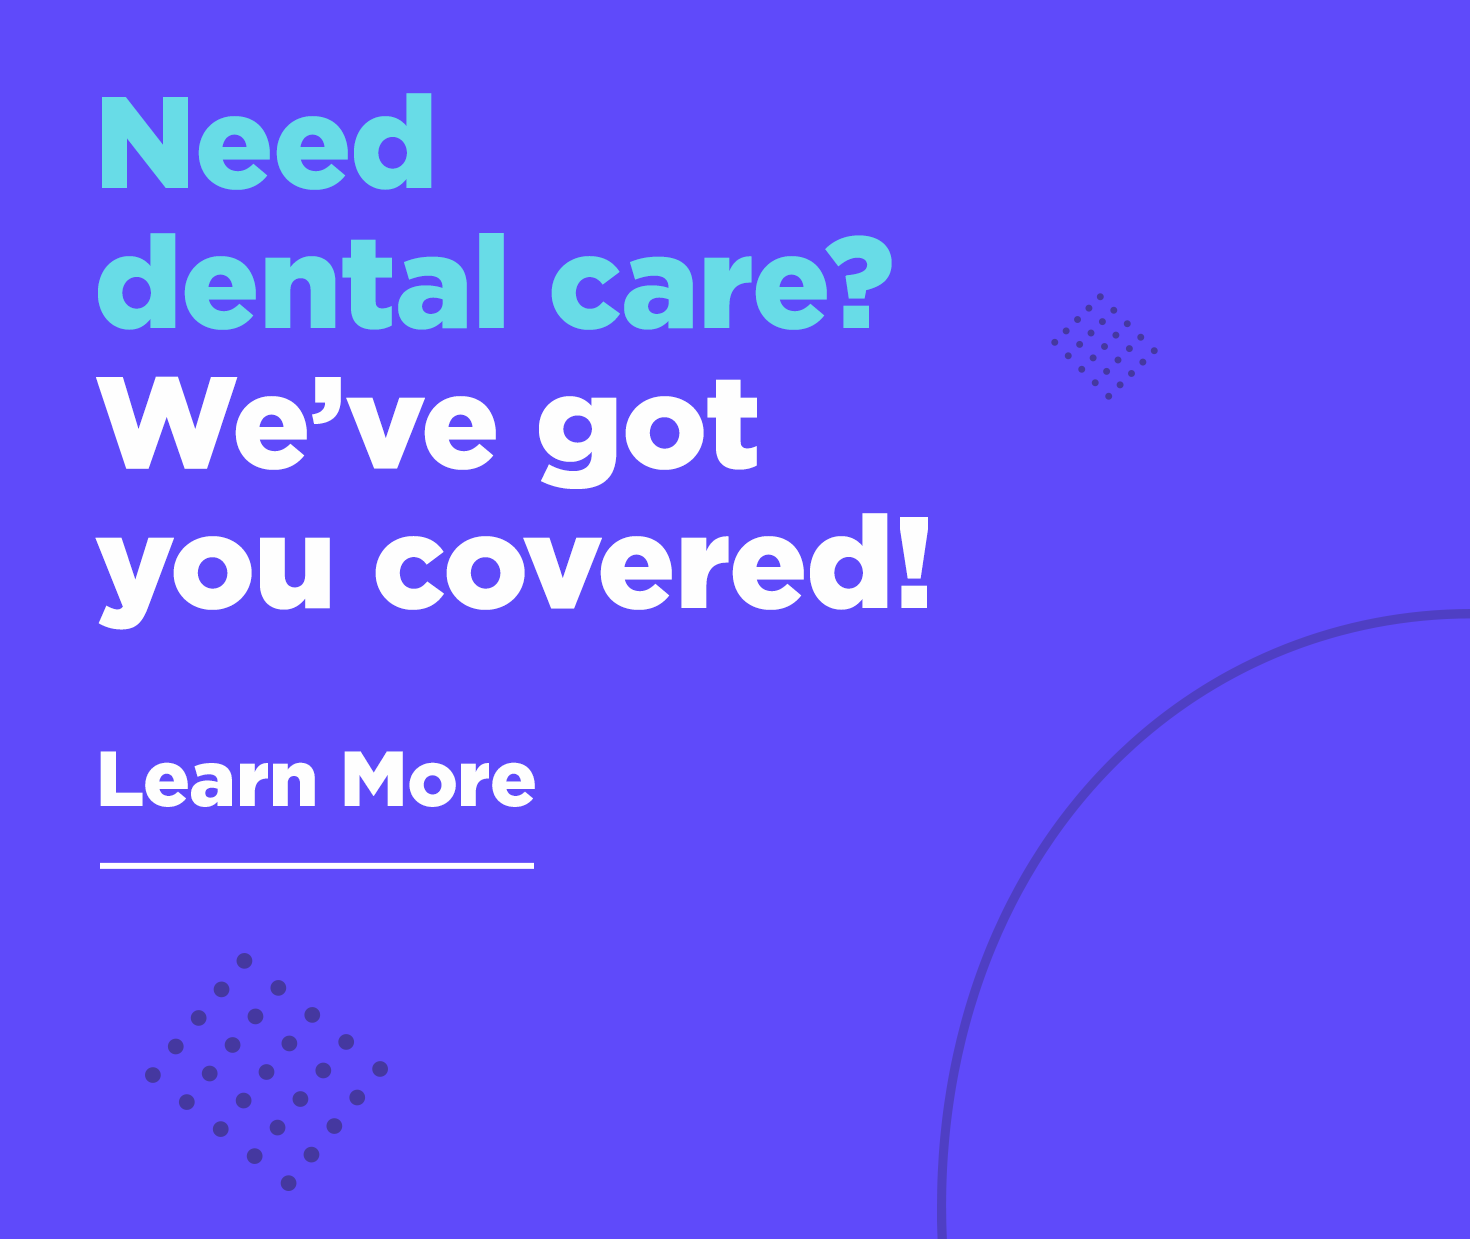 Need dental care? We've got you covered! Learn More. - Dentists of Nona